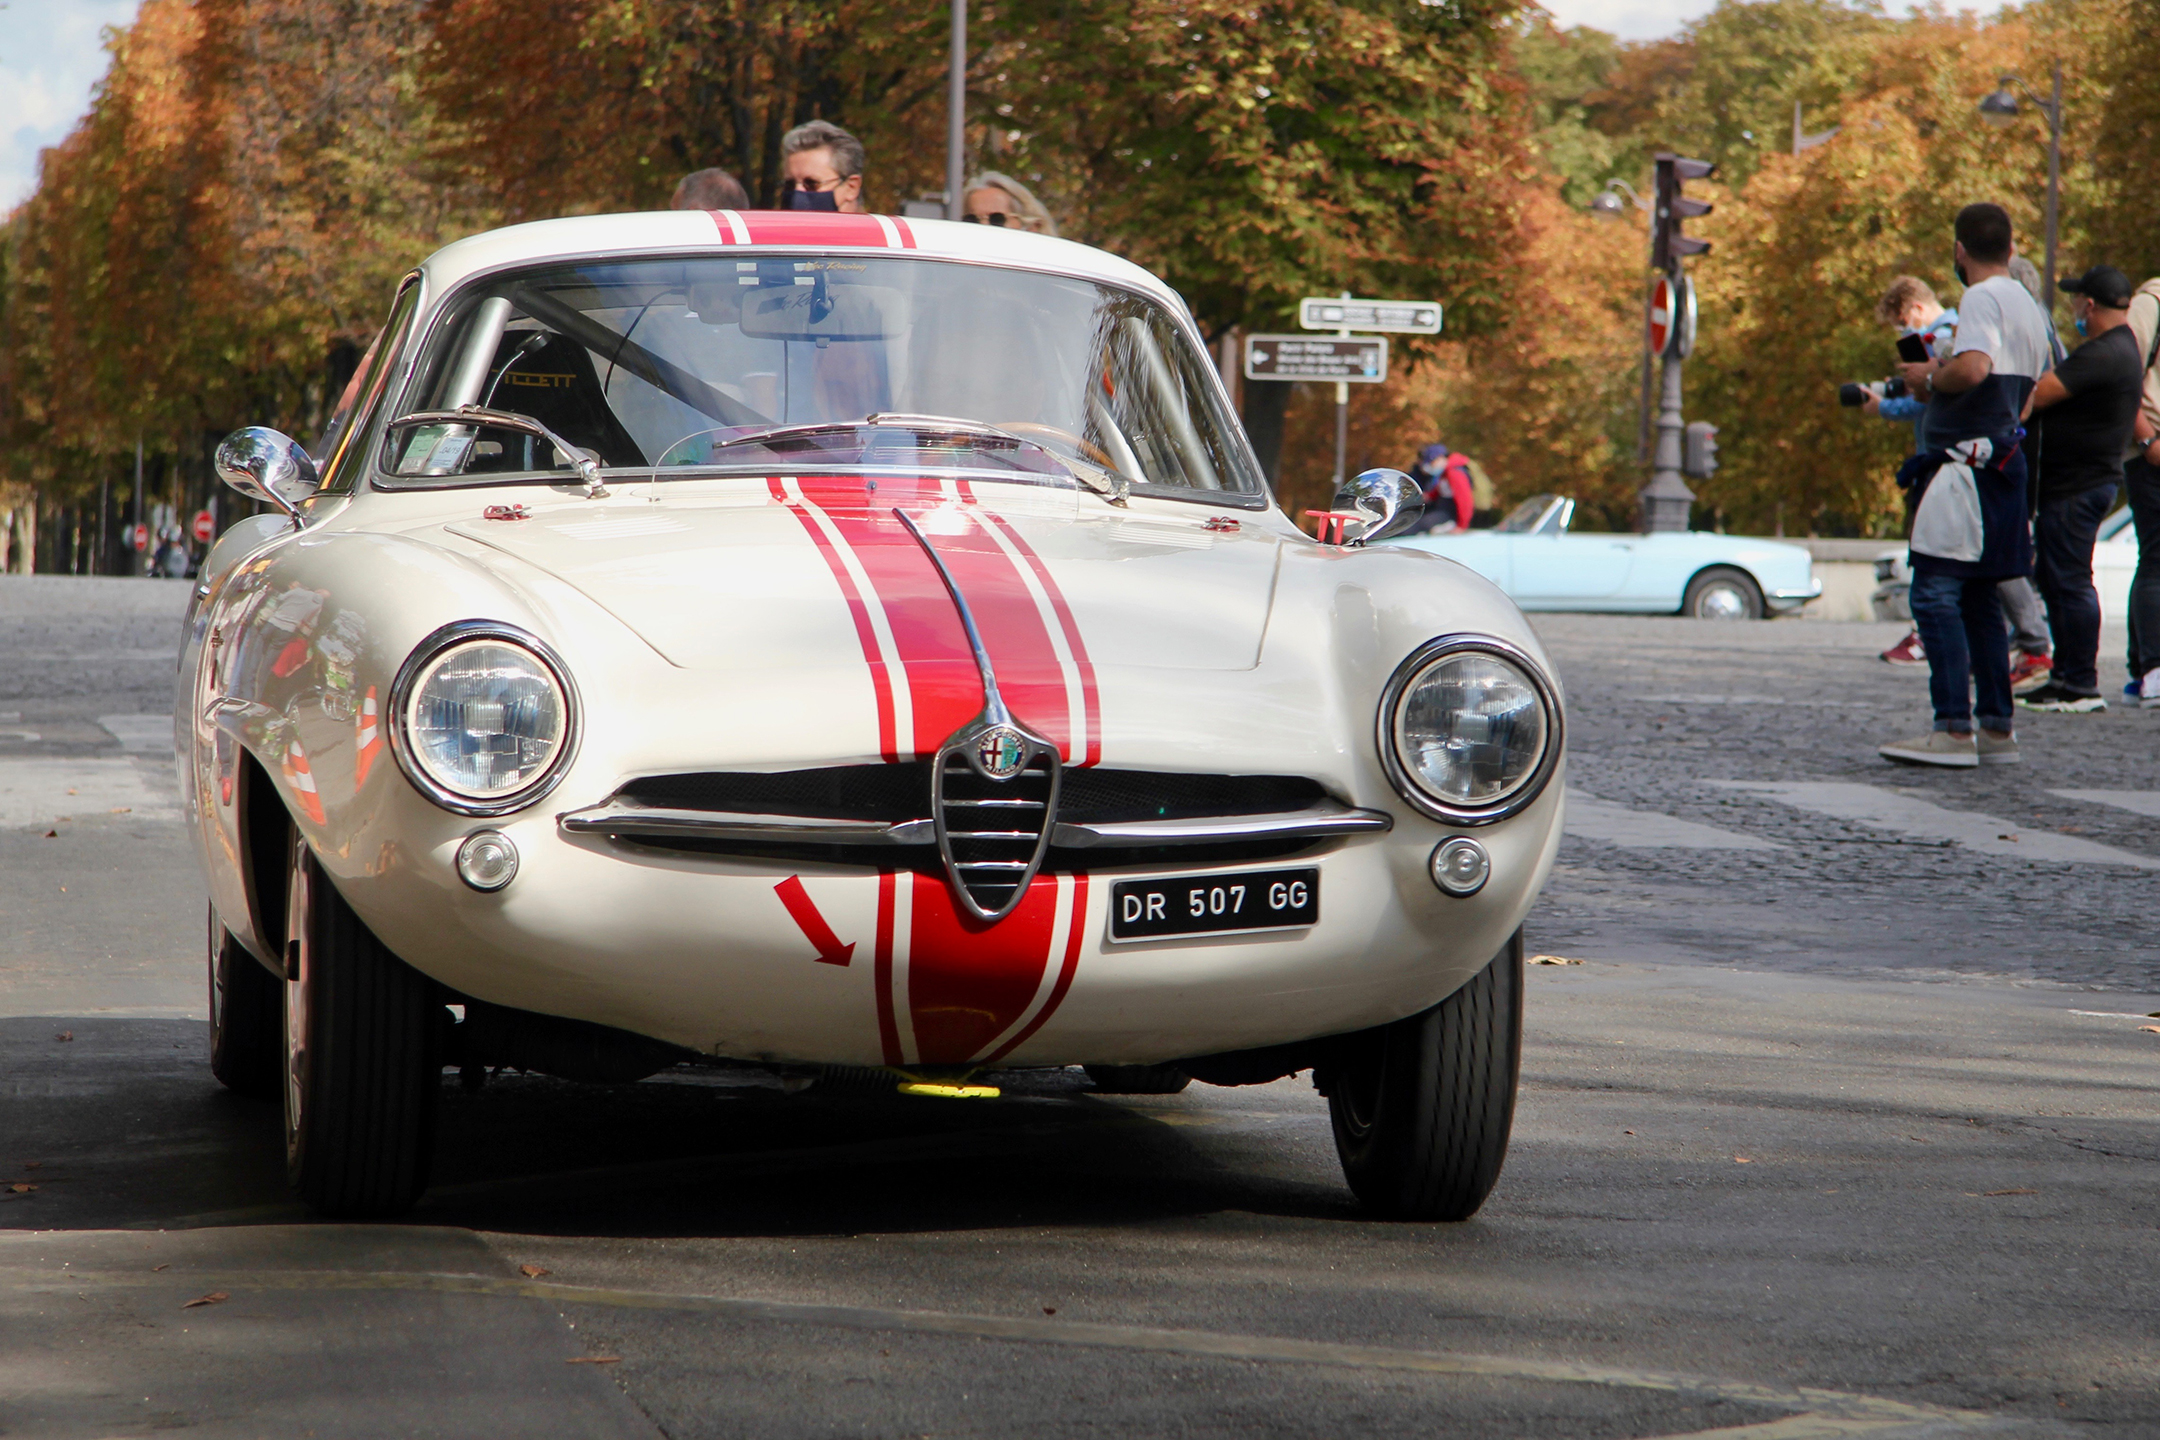 Alfa Romeo Giulia Sprint Speciale Bertone - road to - Grand Palais - Paris - Tour Auto 2020 - photo Ludo Ferrari